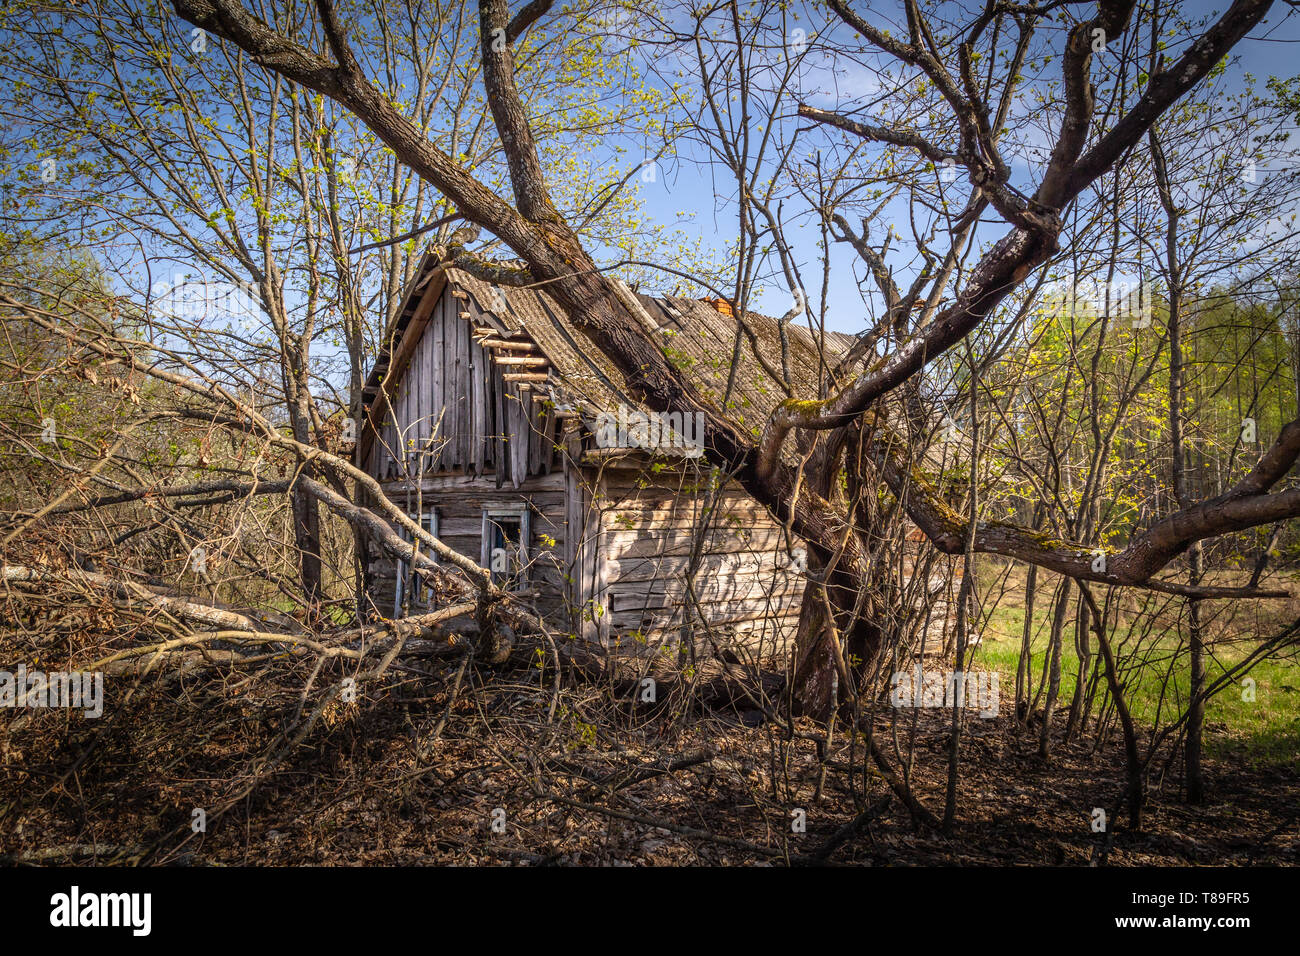 Abandoned little house overgrown with blooming trees and bush in Belarus Chernobyl exclusion zone, recently opened for the public from april 2019. - Stock Image